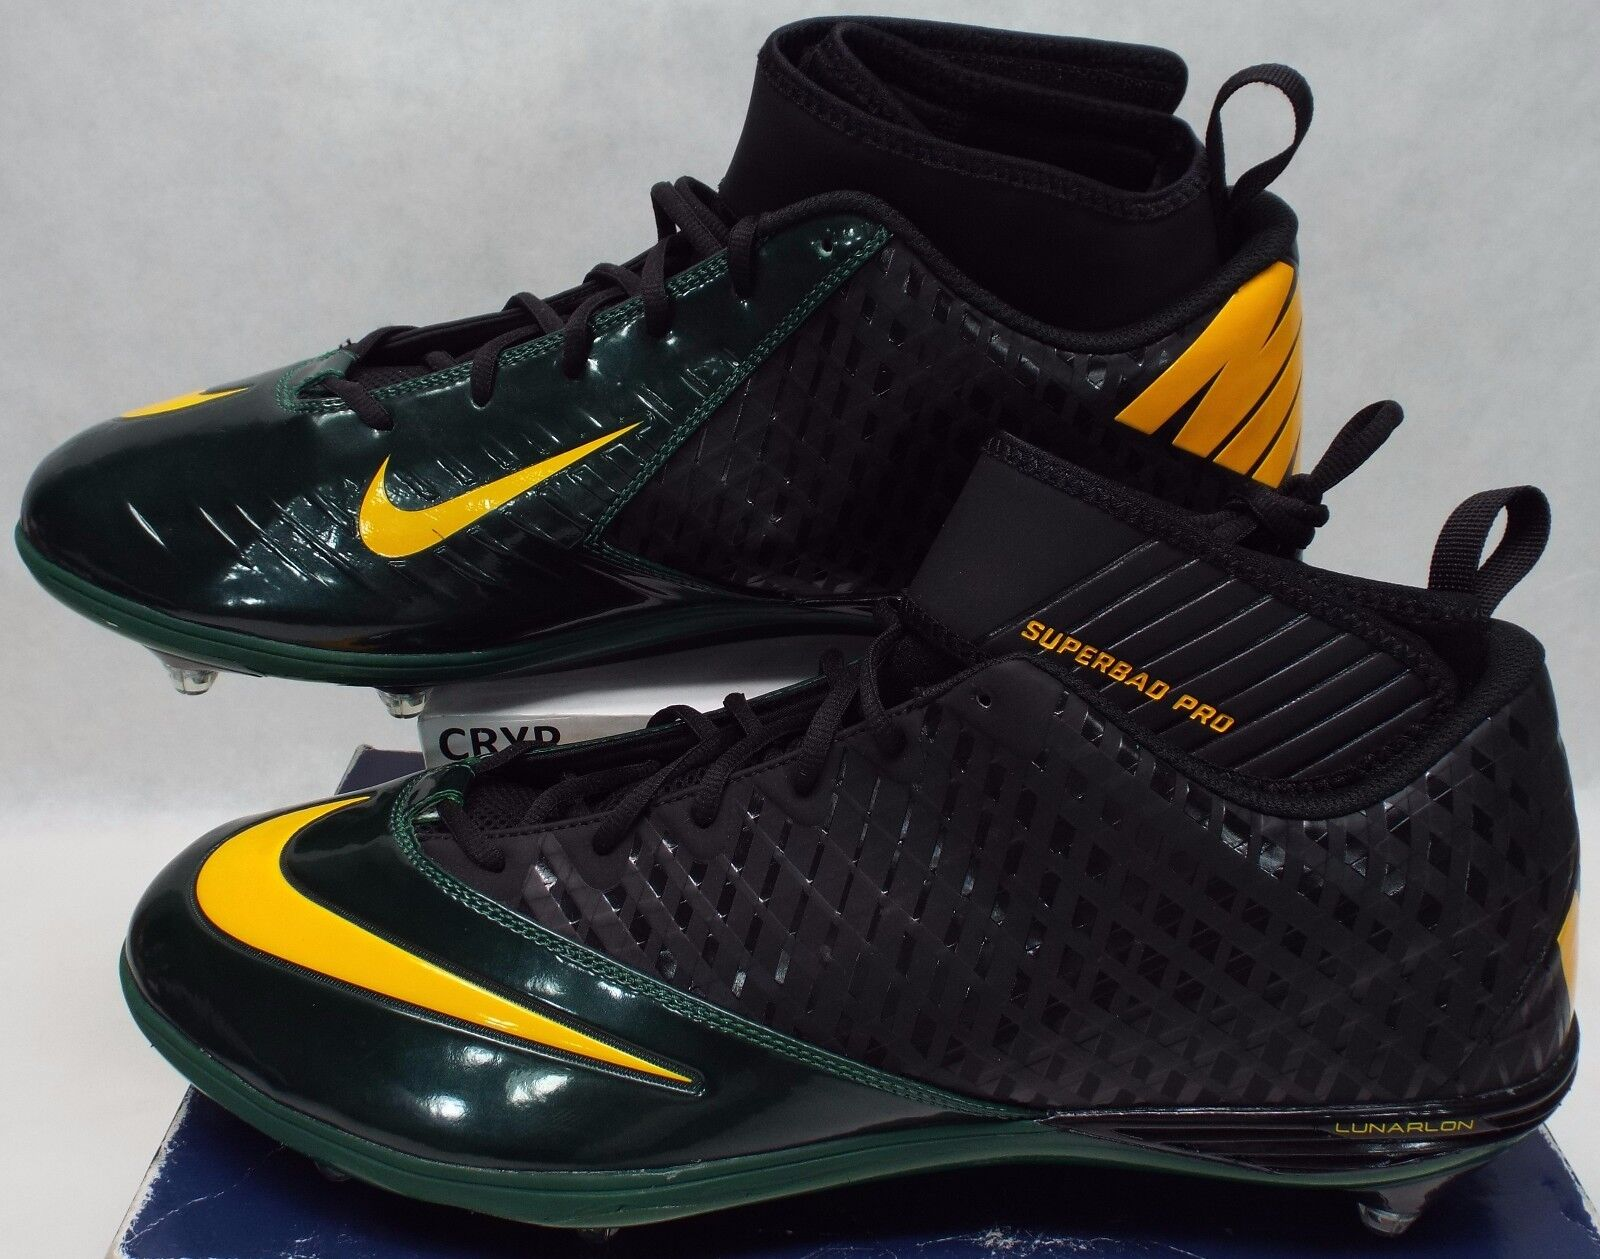 New hommes 18 NIKE Lunarlon Superbad Pro Packers Cleats Chaussures 105 544762-012